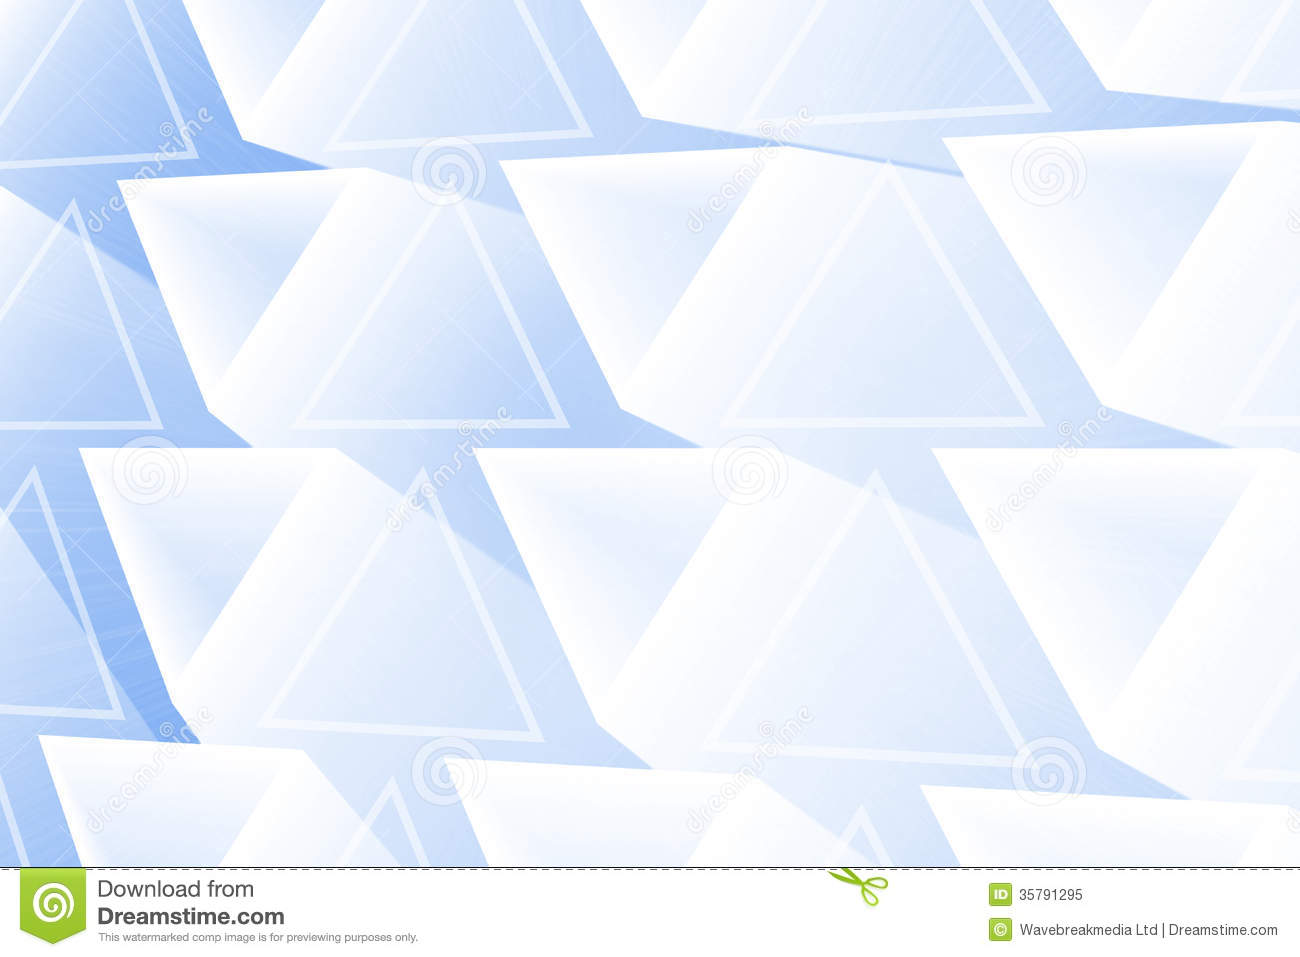 Triangles rougeoyantes abstraites